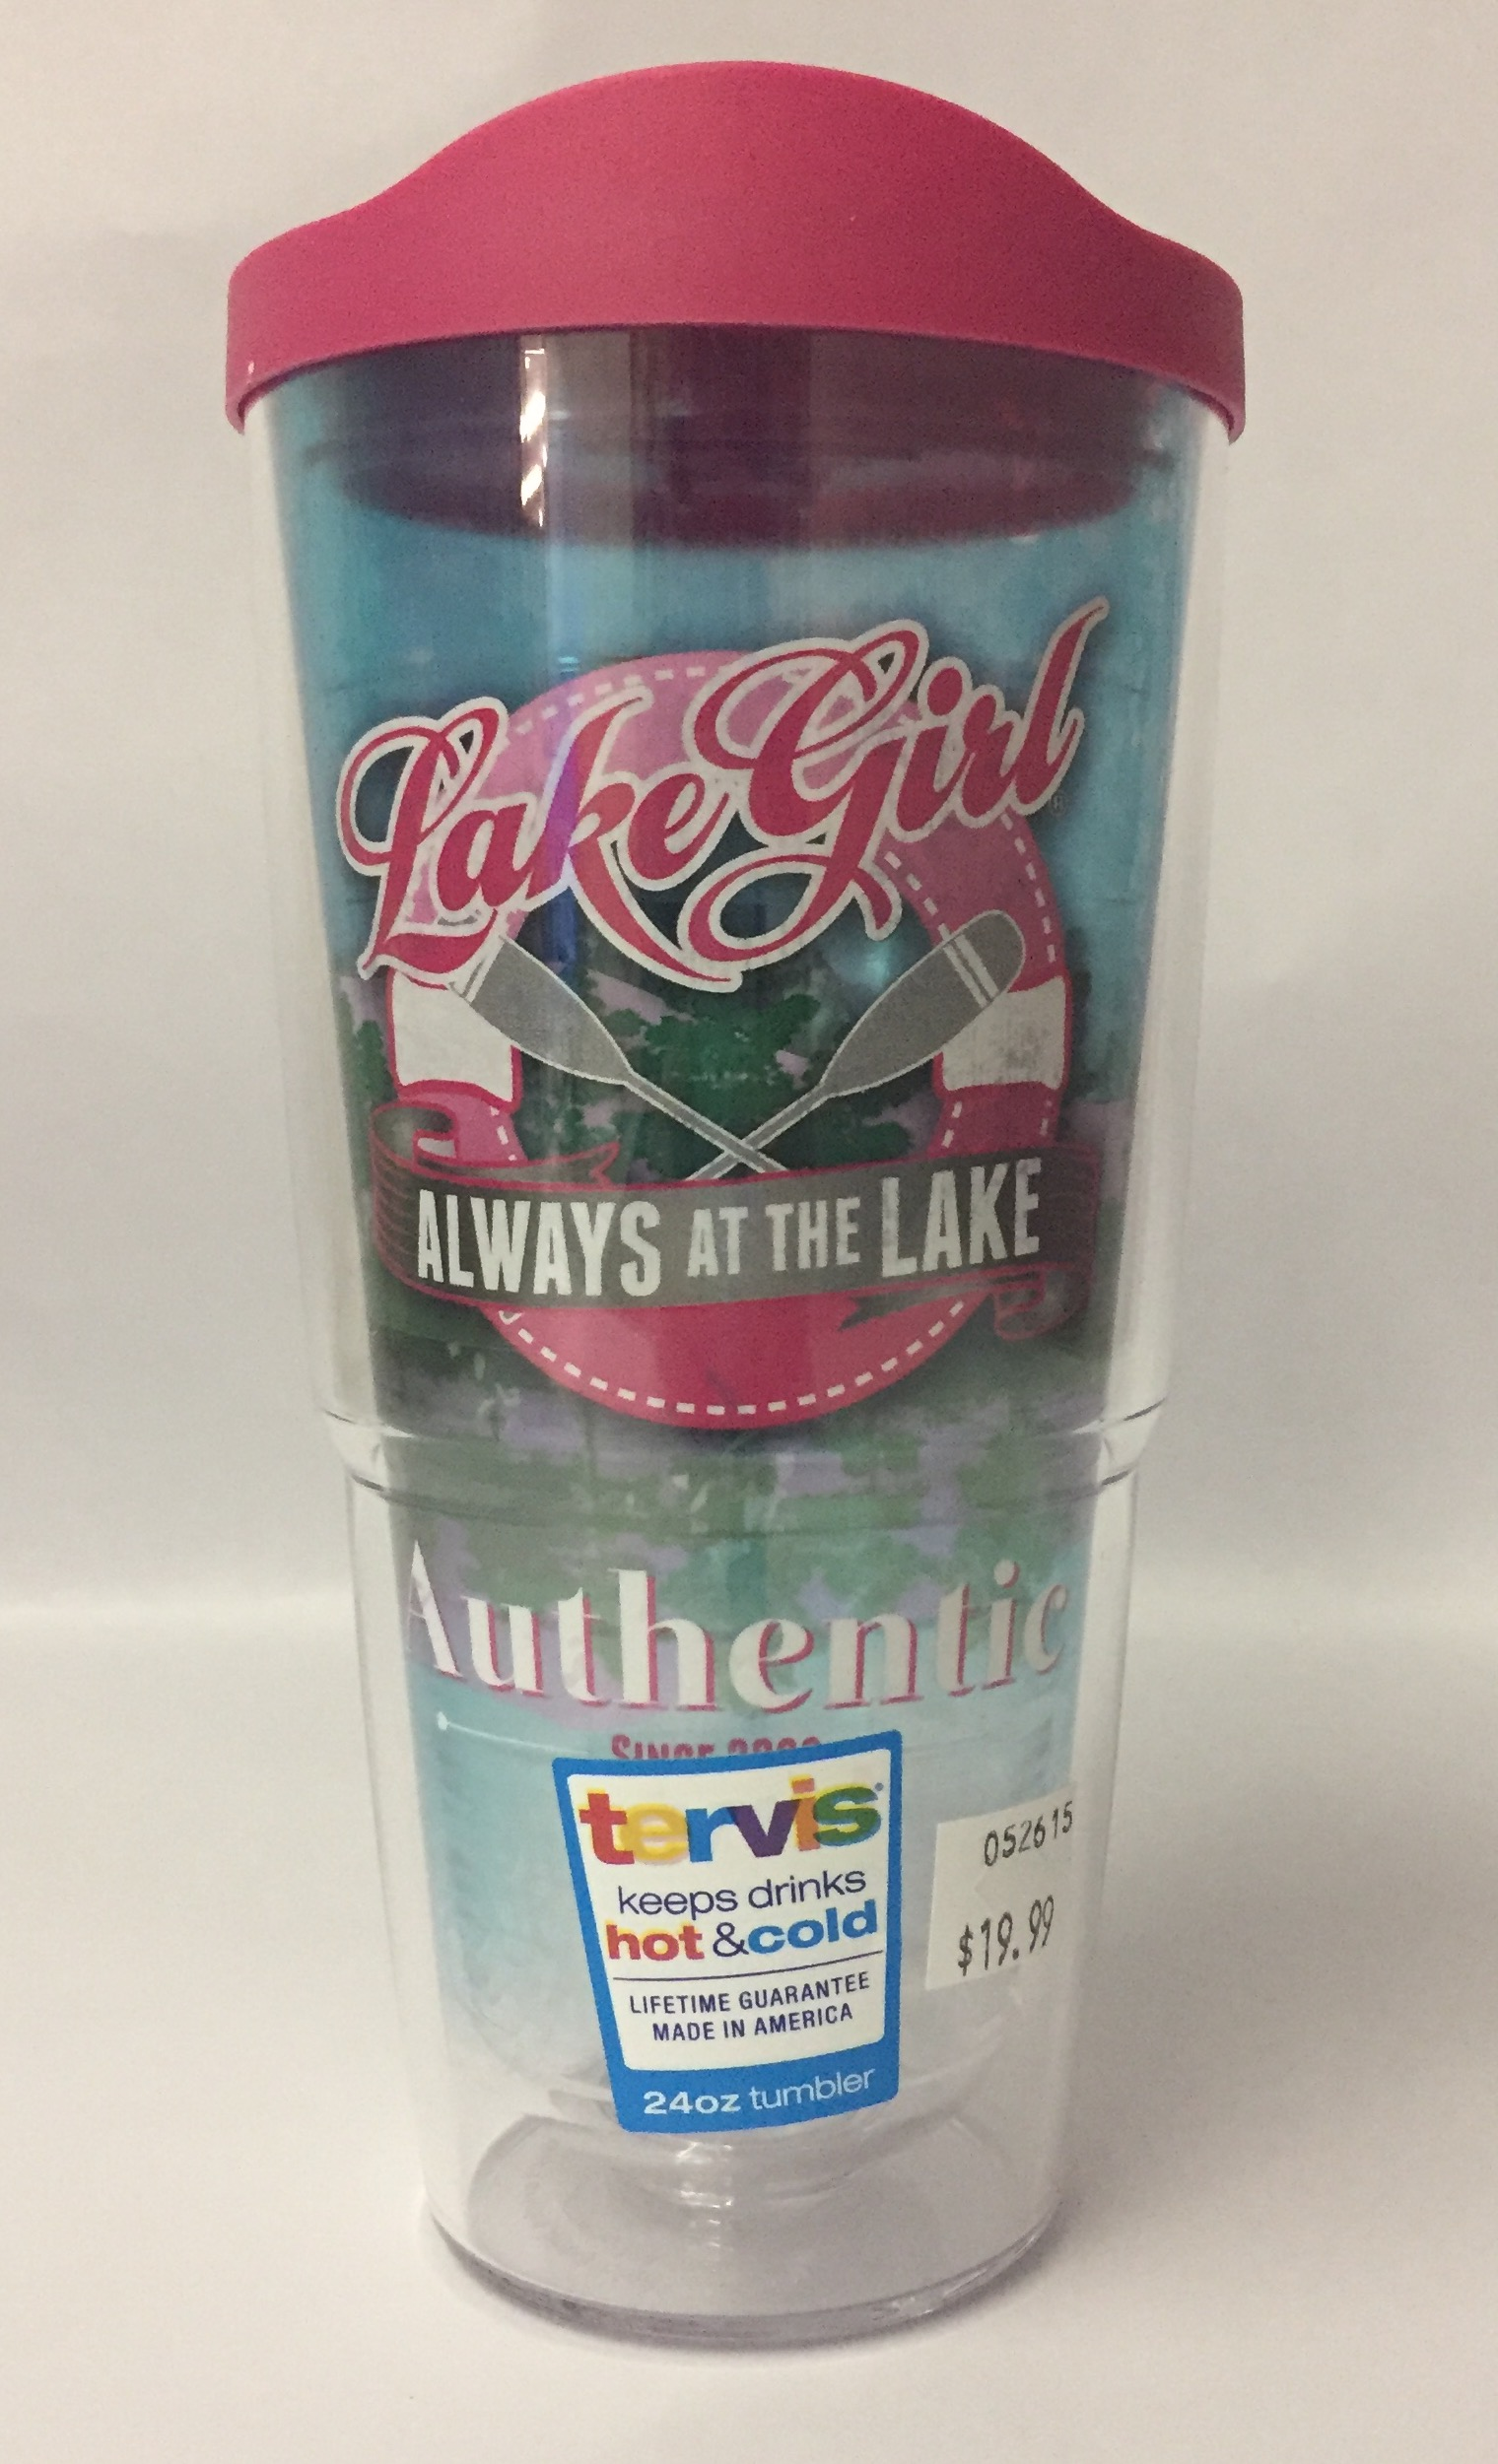 Tervis Lake Girl Tumbler